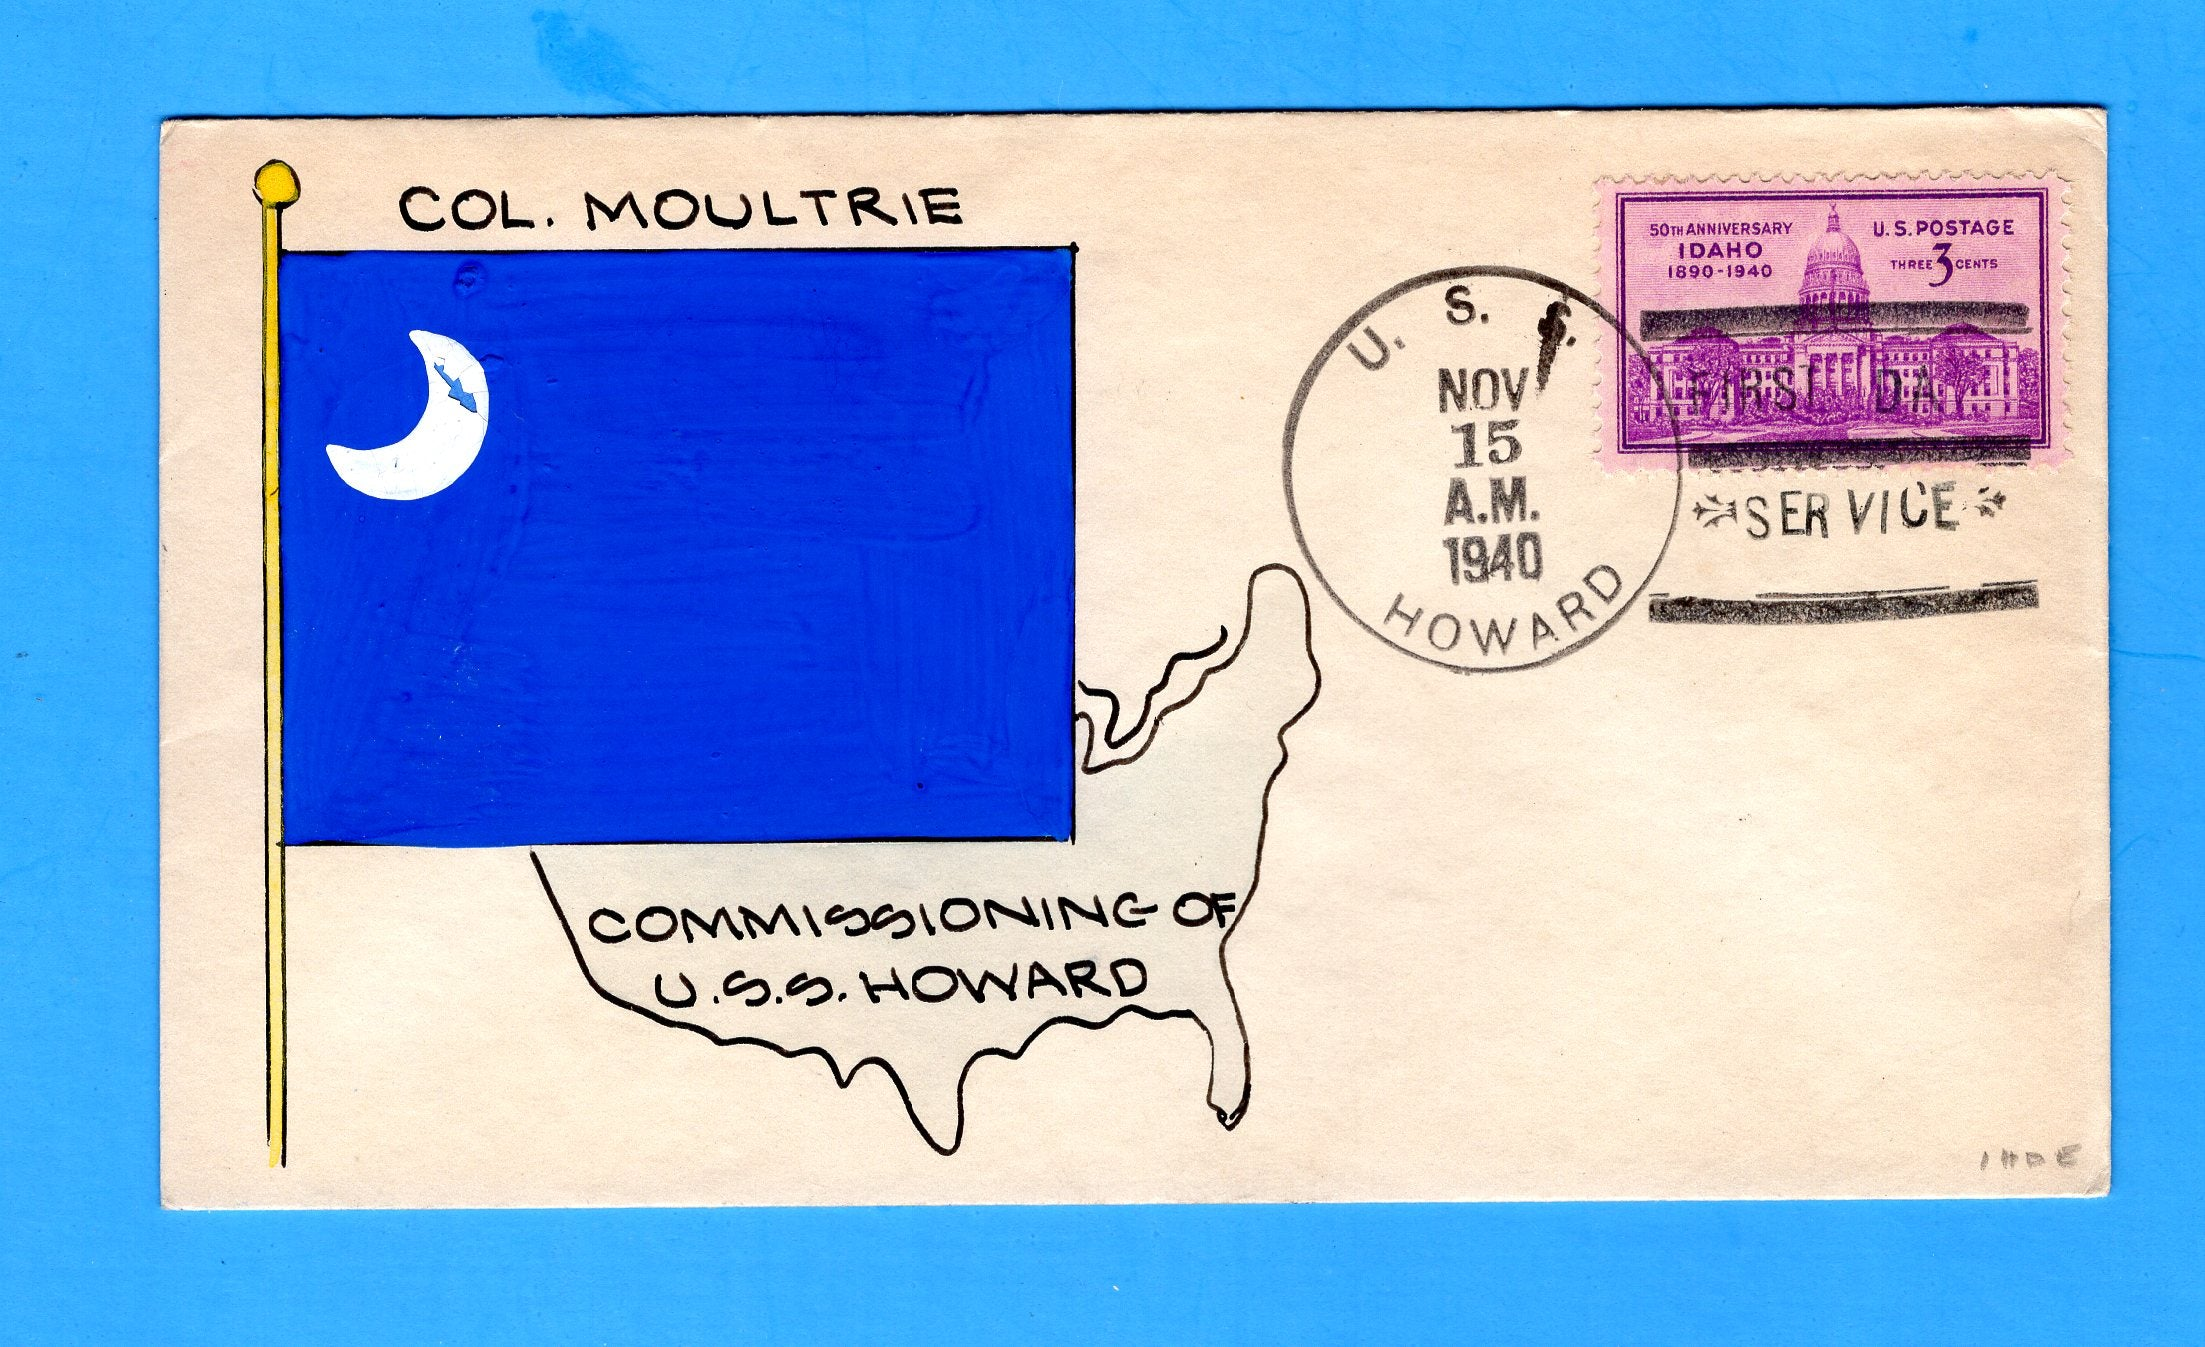 USS Howard DD-179 First Day Postal Service November 15, 1940 - Mae Weigand Hand Painted Cachet